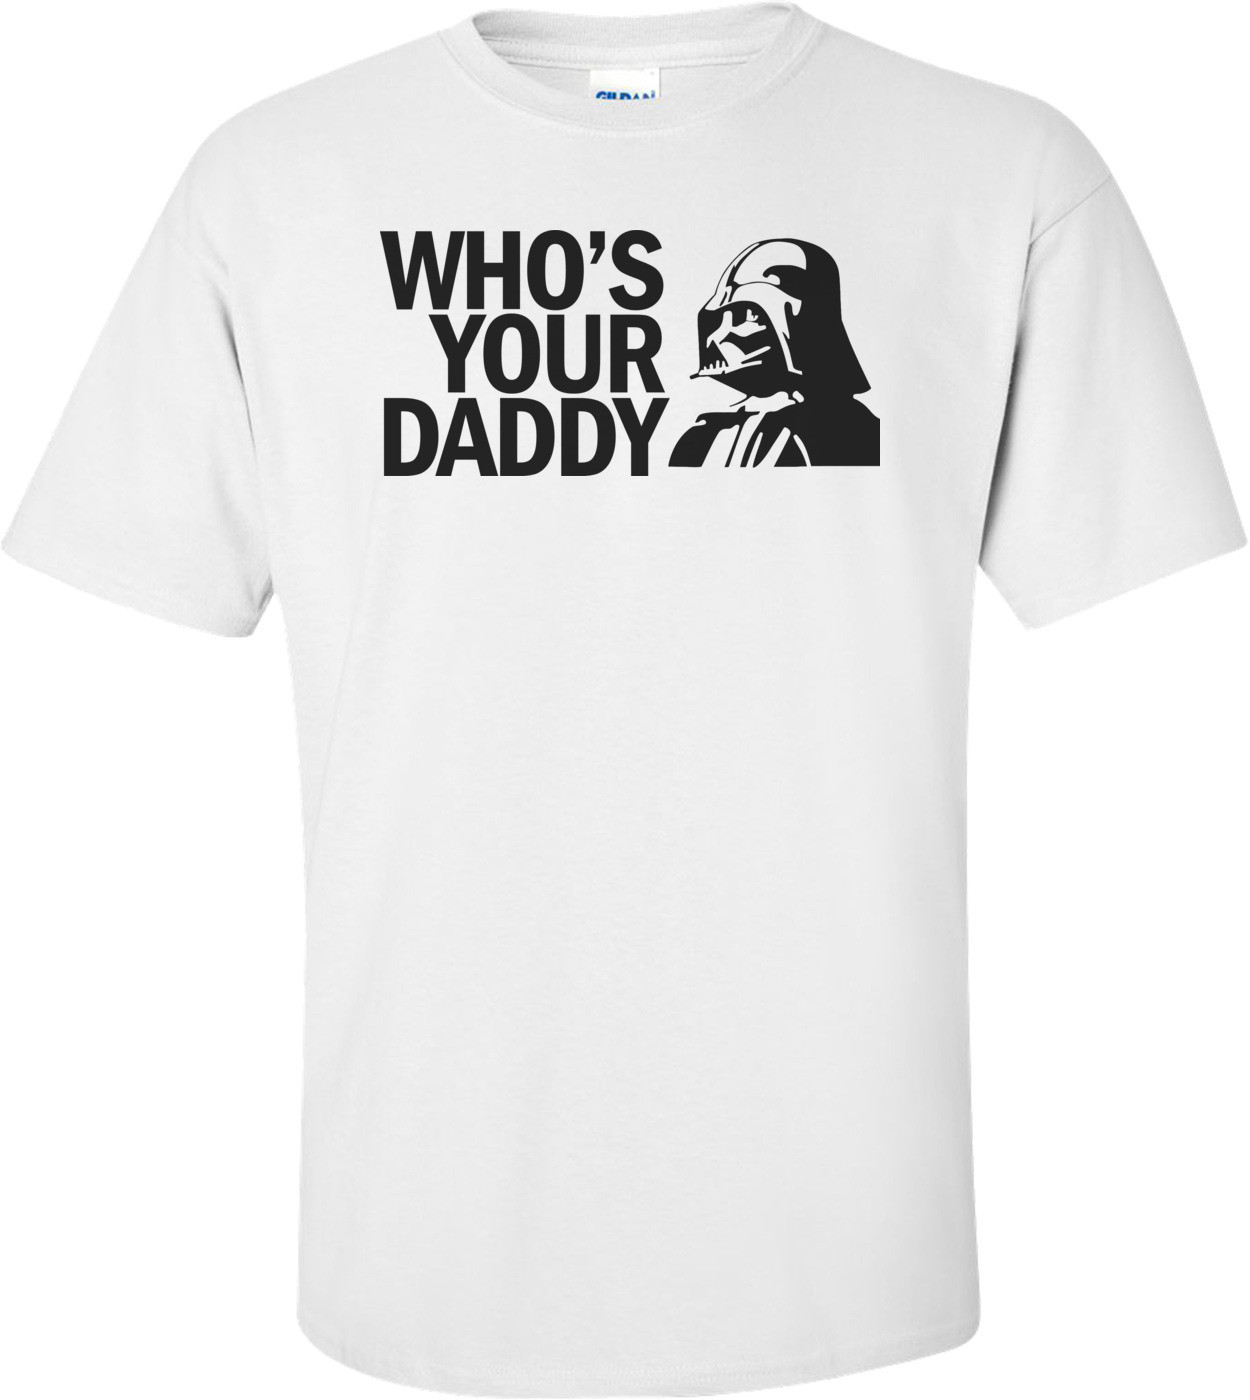 Who's Your Daddy Funny Star Wars Shirt